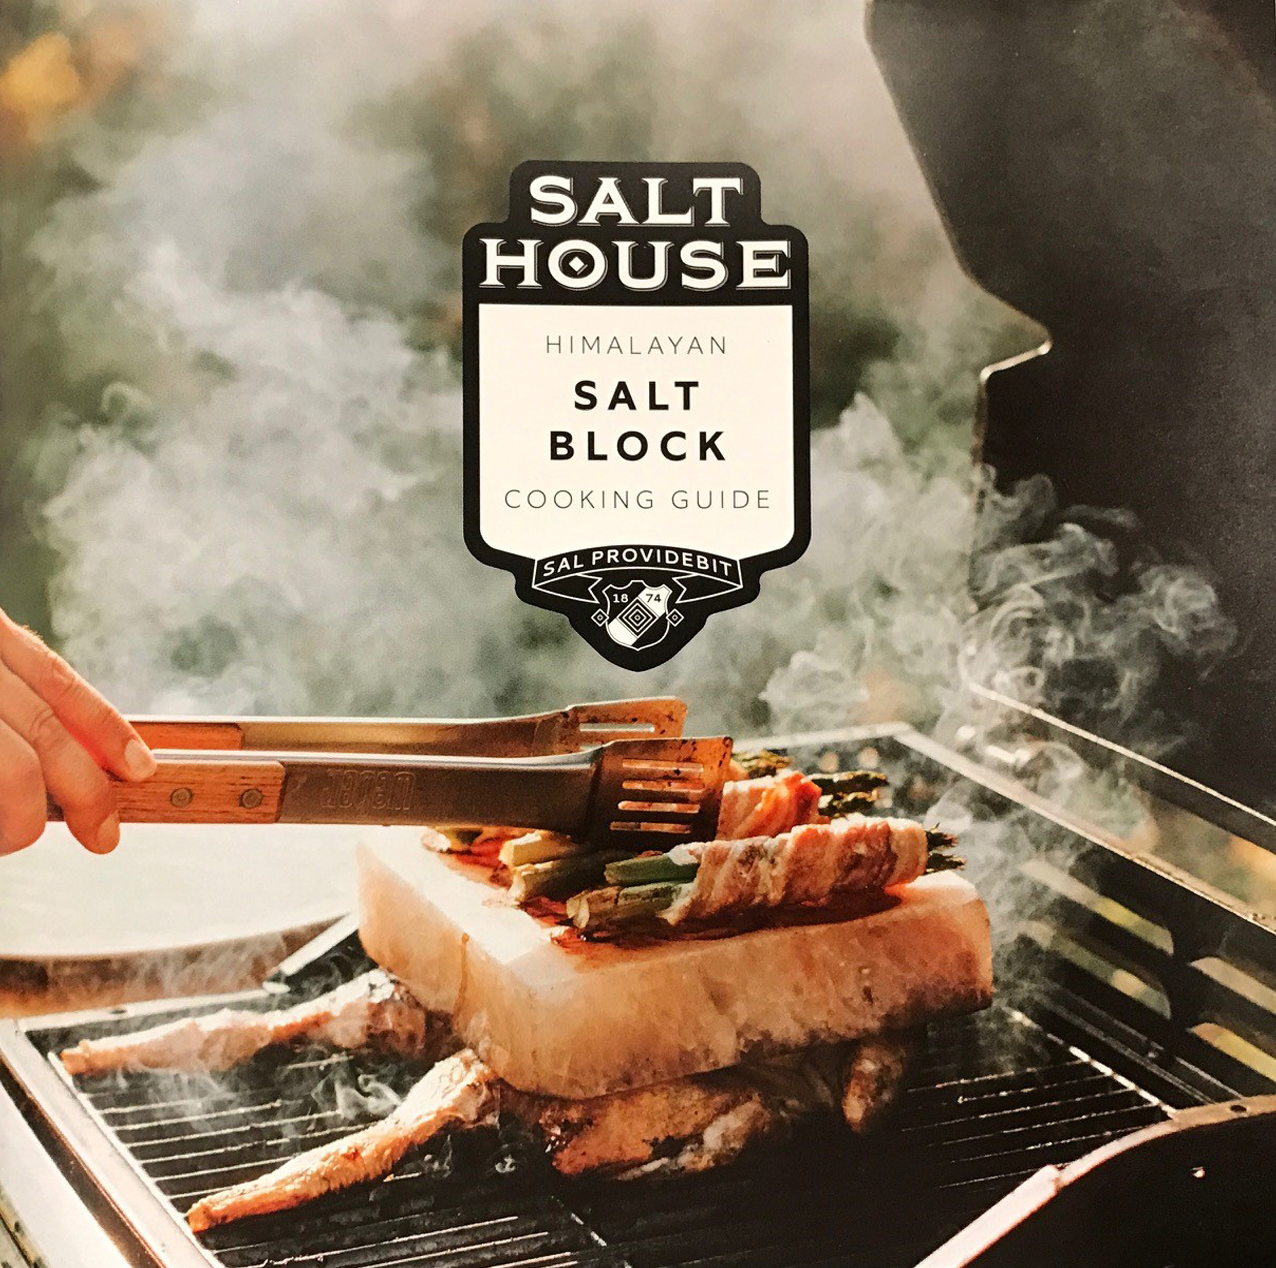 Salthouse Himalayan Salt Block Cooking Guide